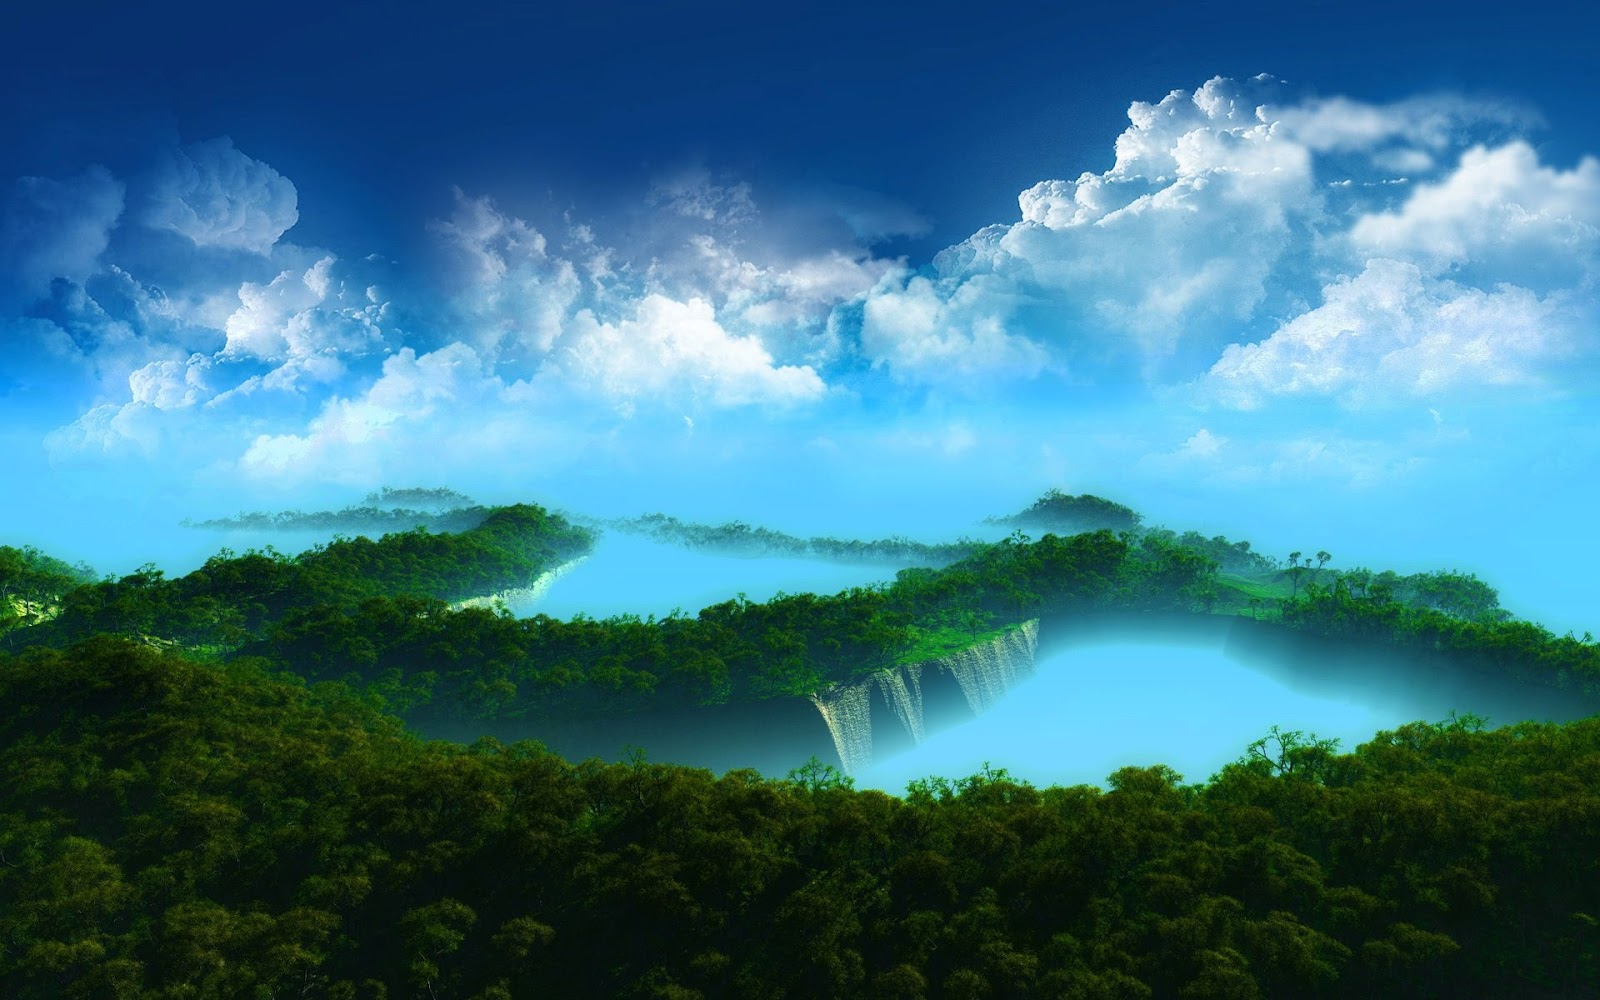 Stunning scenery   Amazing Picture Of Nature